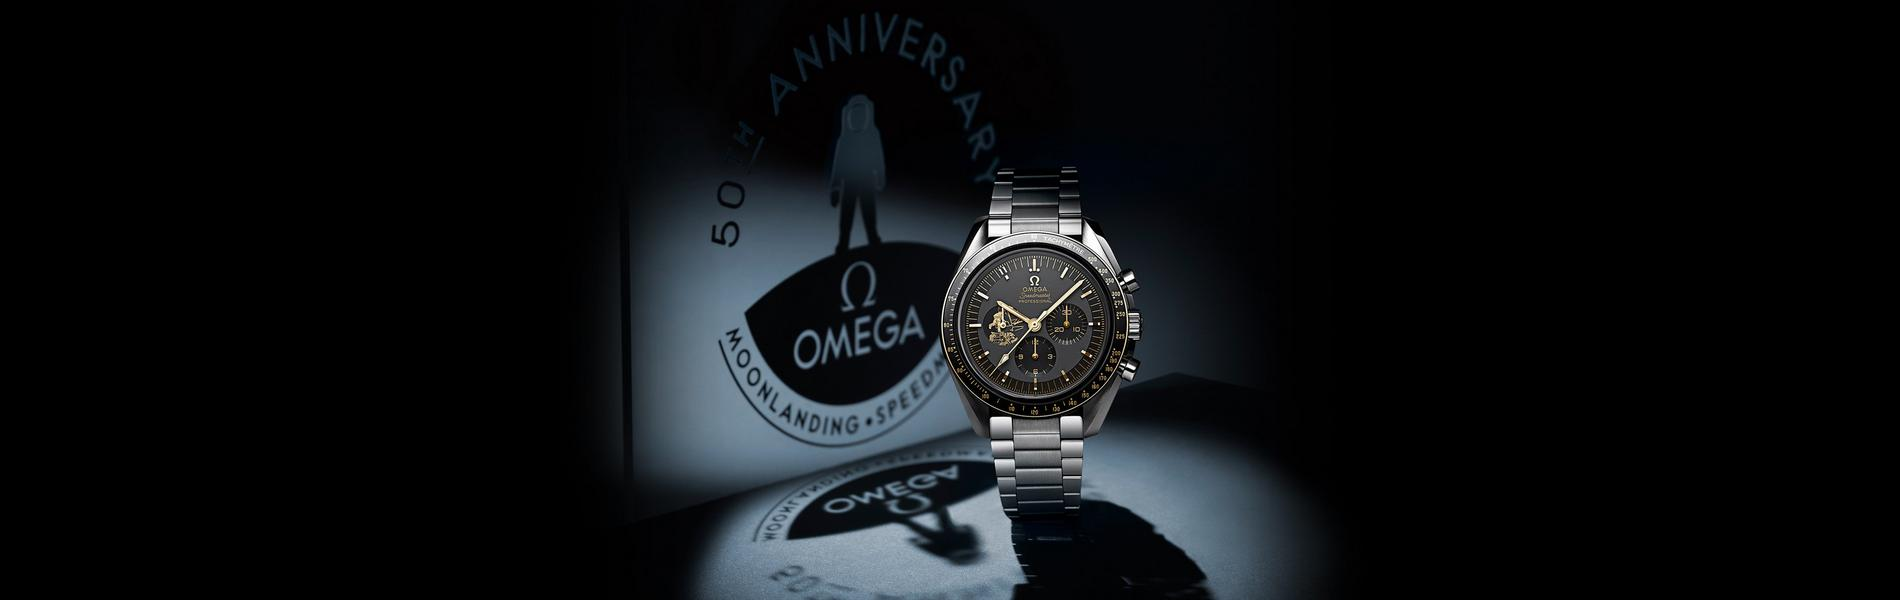 The Speedmaster Professional Series, one of OMEGA's most iconic timepieces